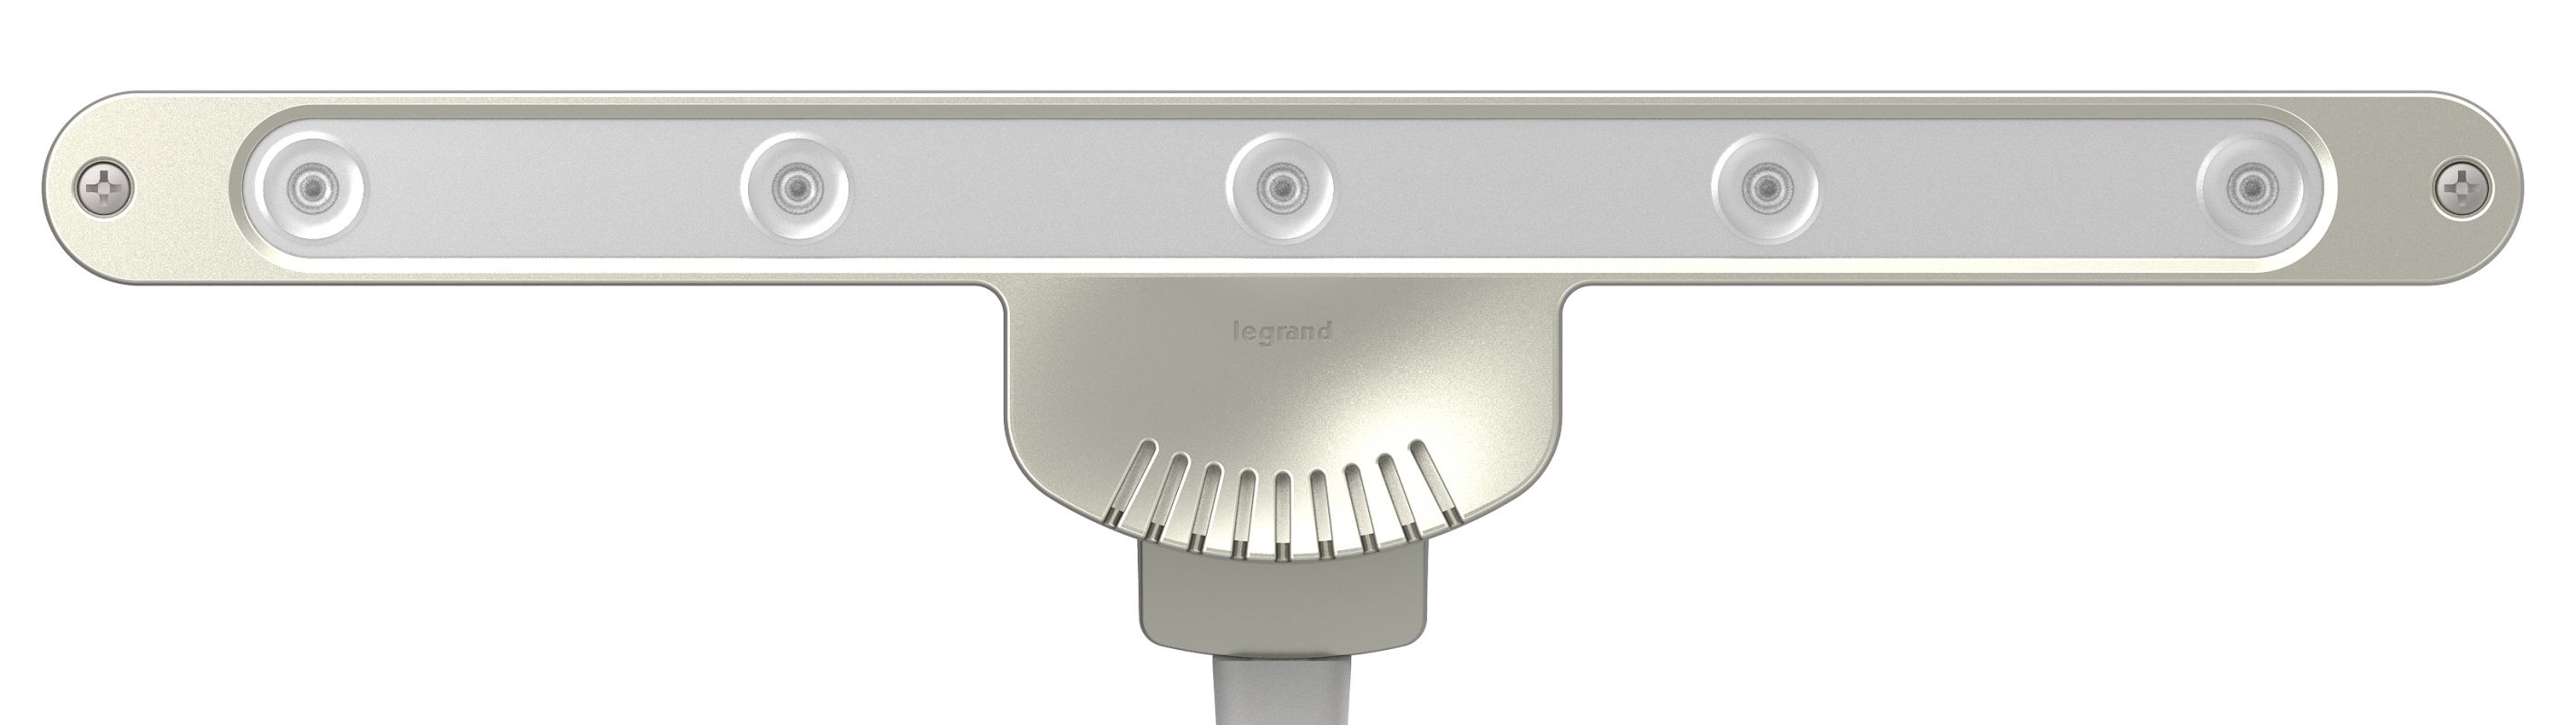 Legrand ALLNLEDTM4 adorne Under Cabinet 8 Watt LED Linear Light Sale $66.58 ITEM#: 2669597 MODEL# :ALLNLEDTM4 UPC#: 786776178173 :